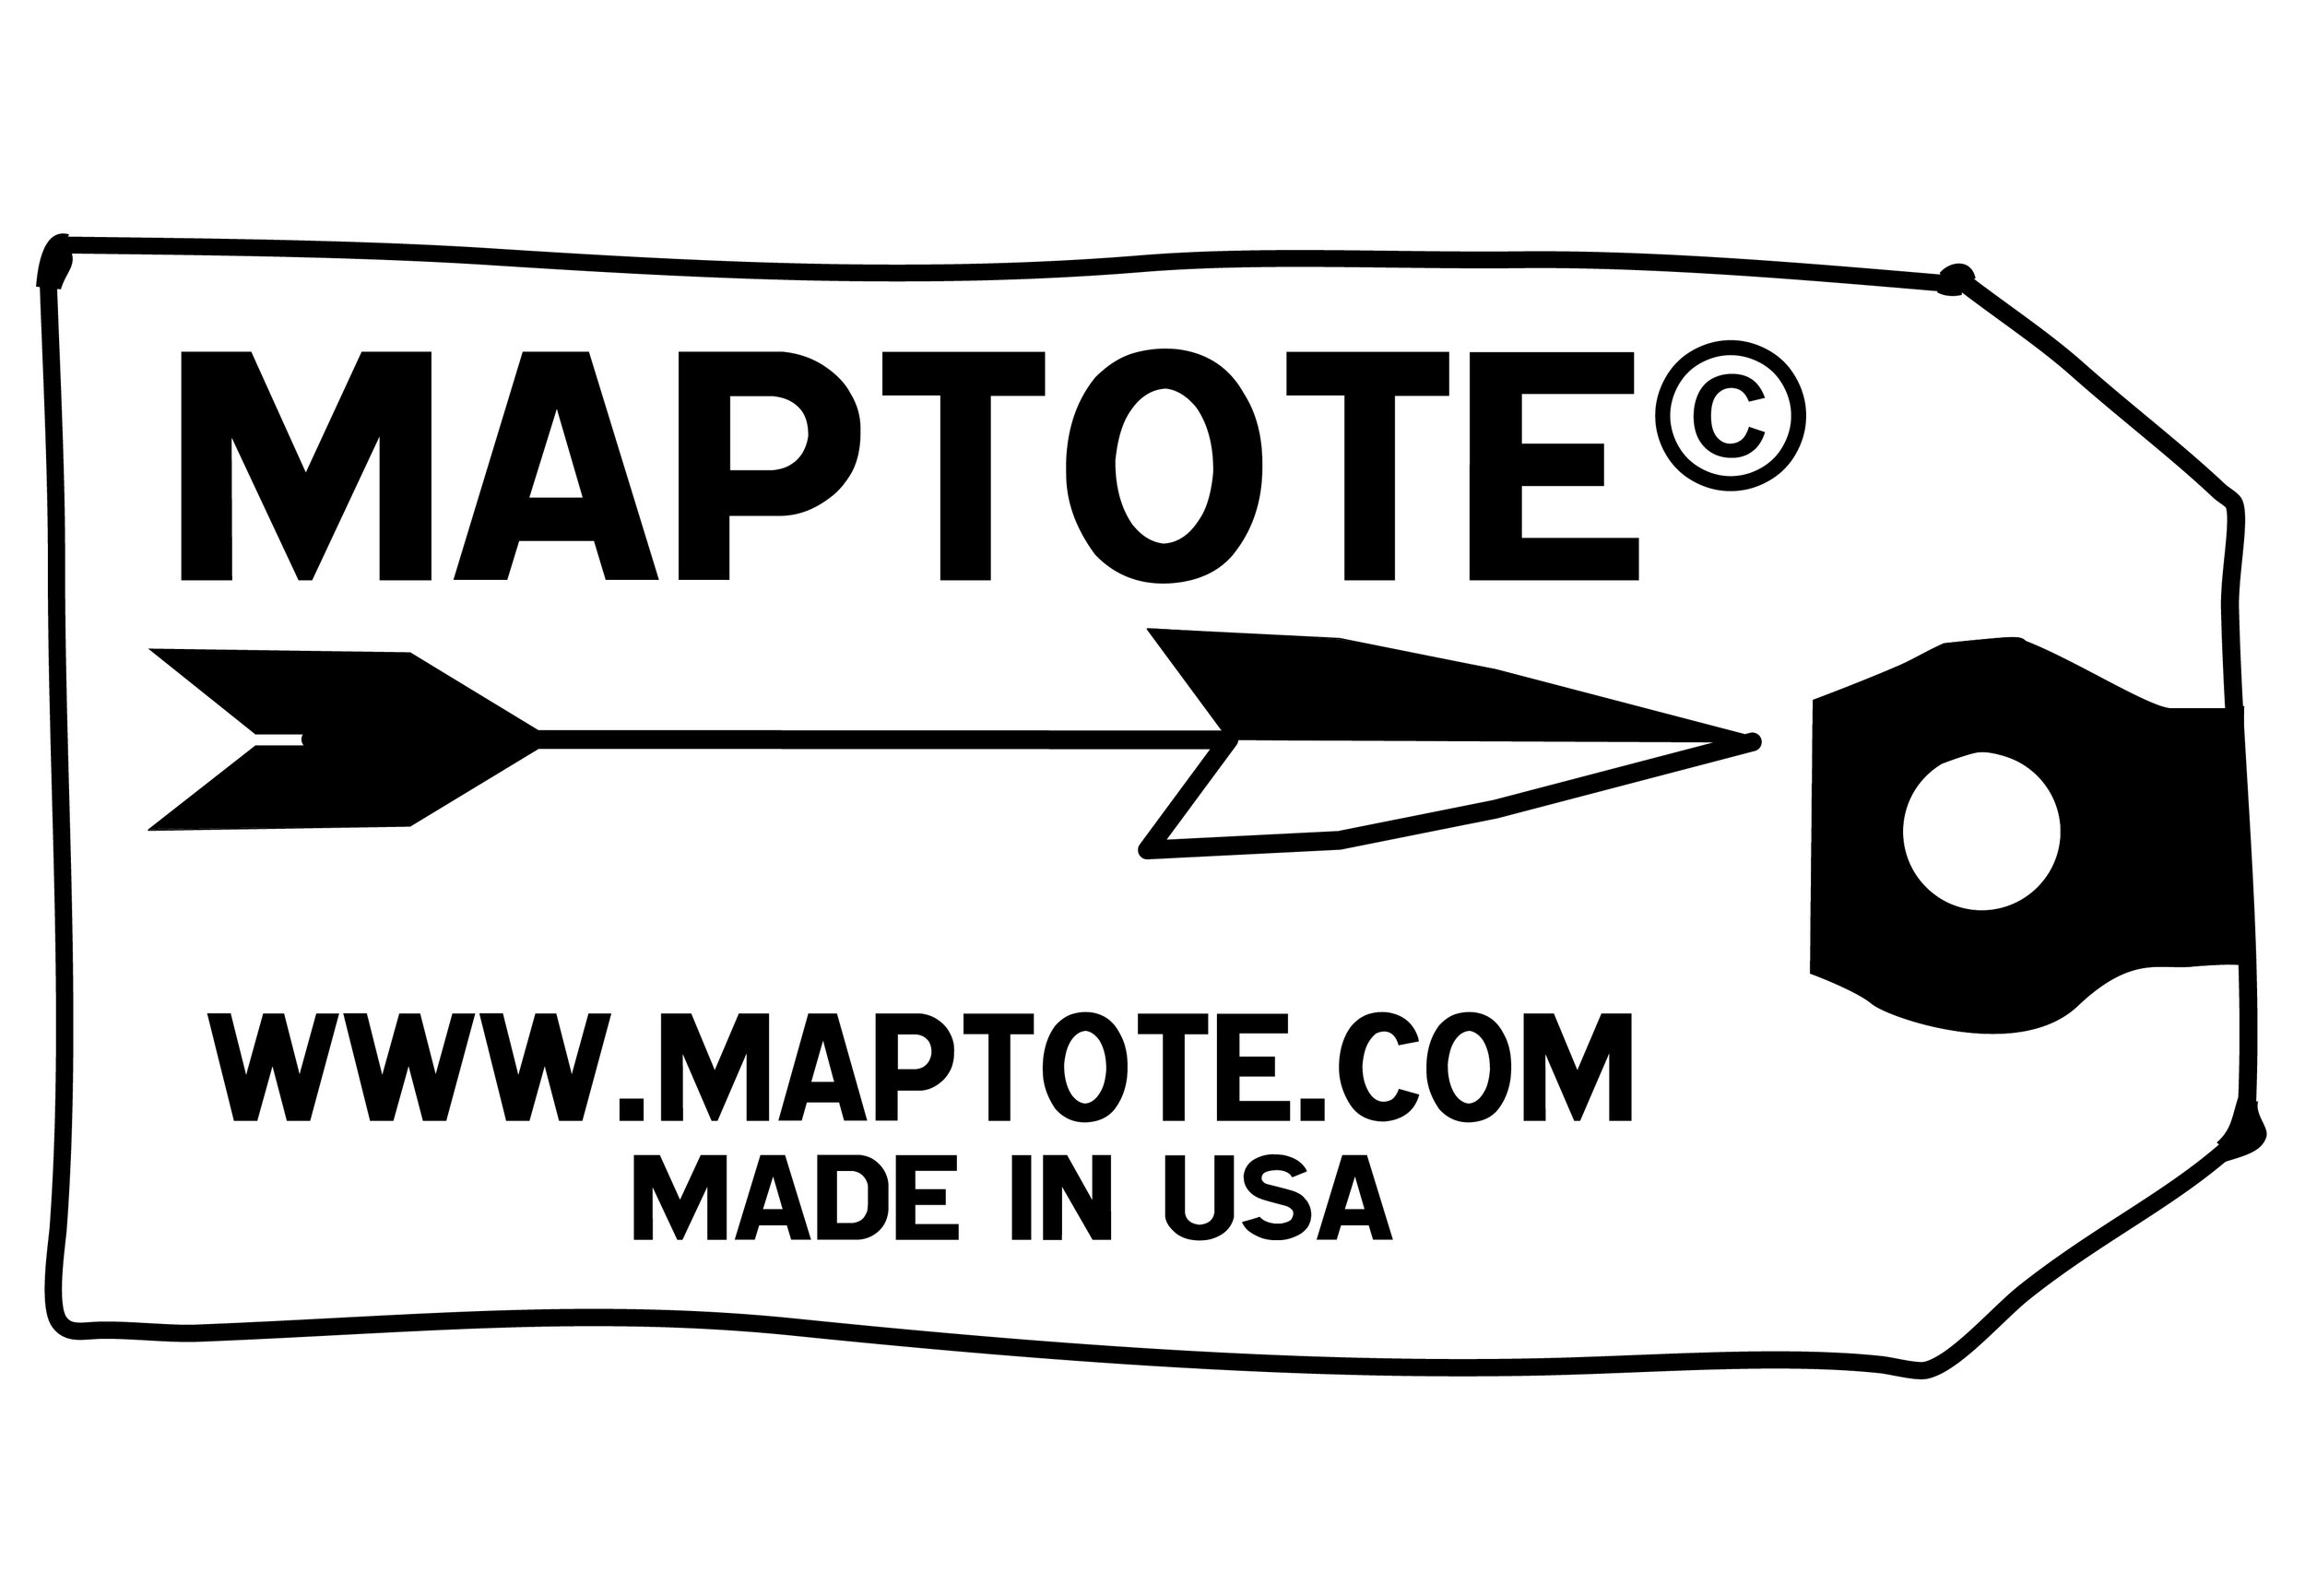 MAPTOTE-HAND-DRAWN-LOGO-HiRes.jpg